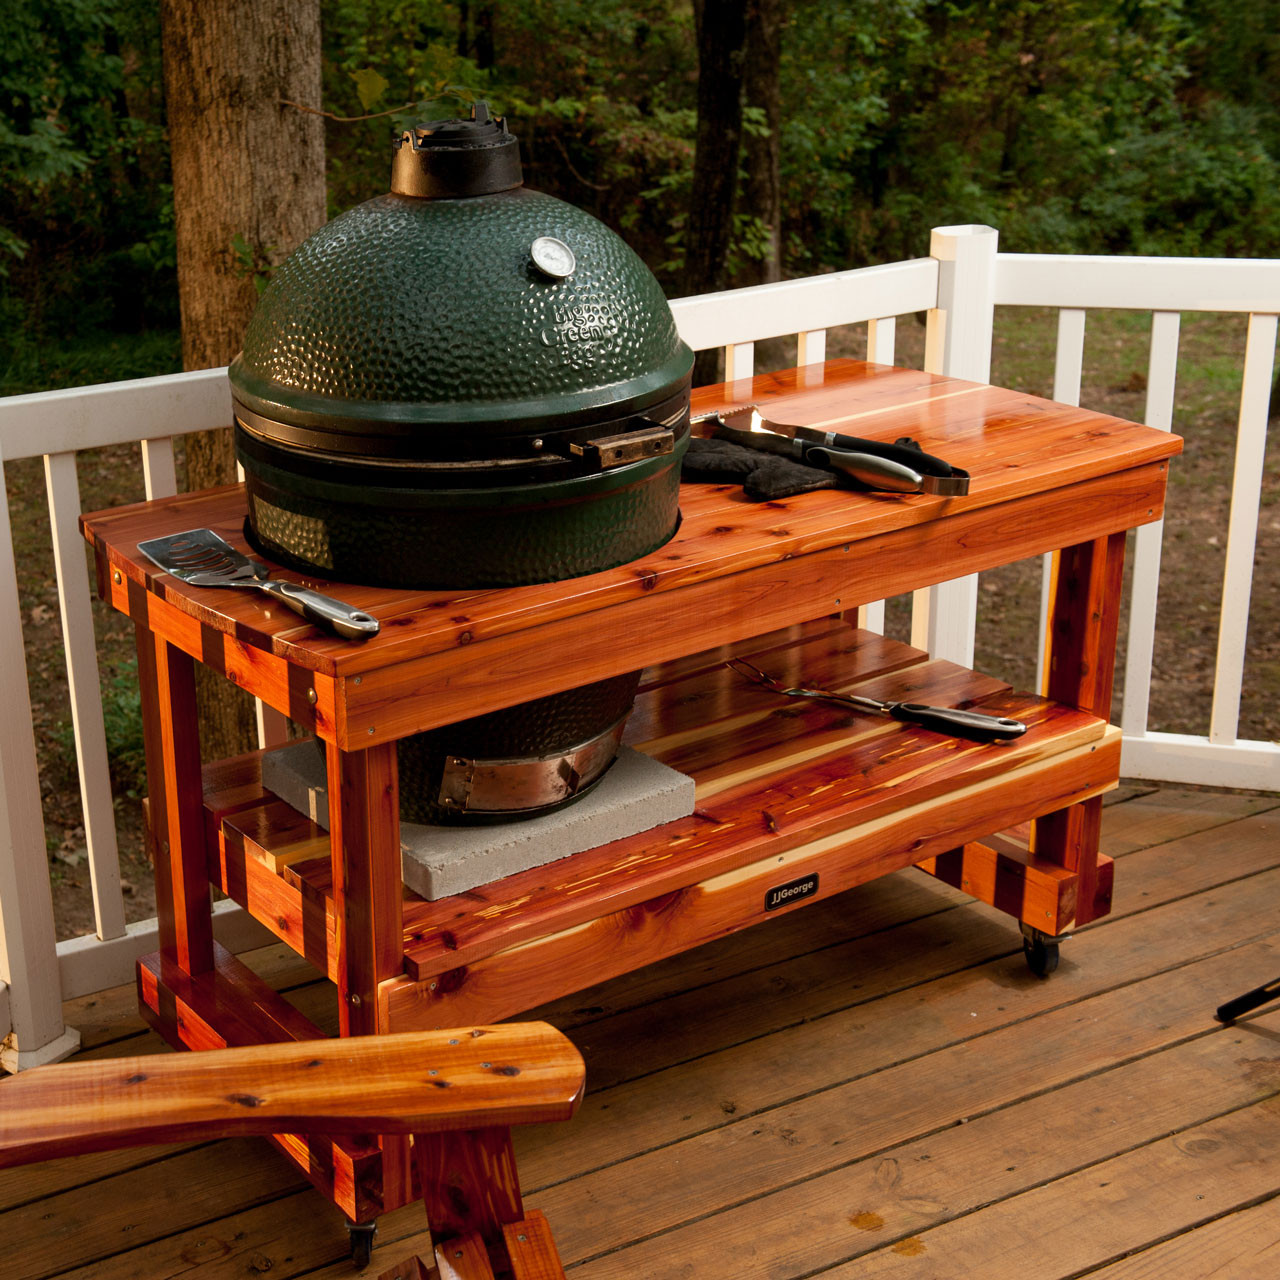 Big Green Egg Outdoor Kitchen: The Evolution Of The Grill